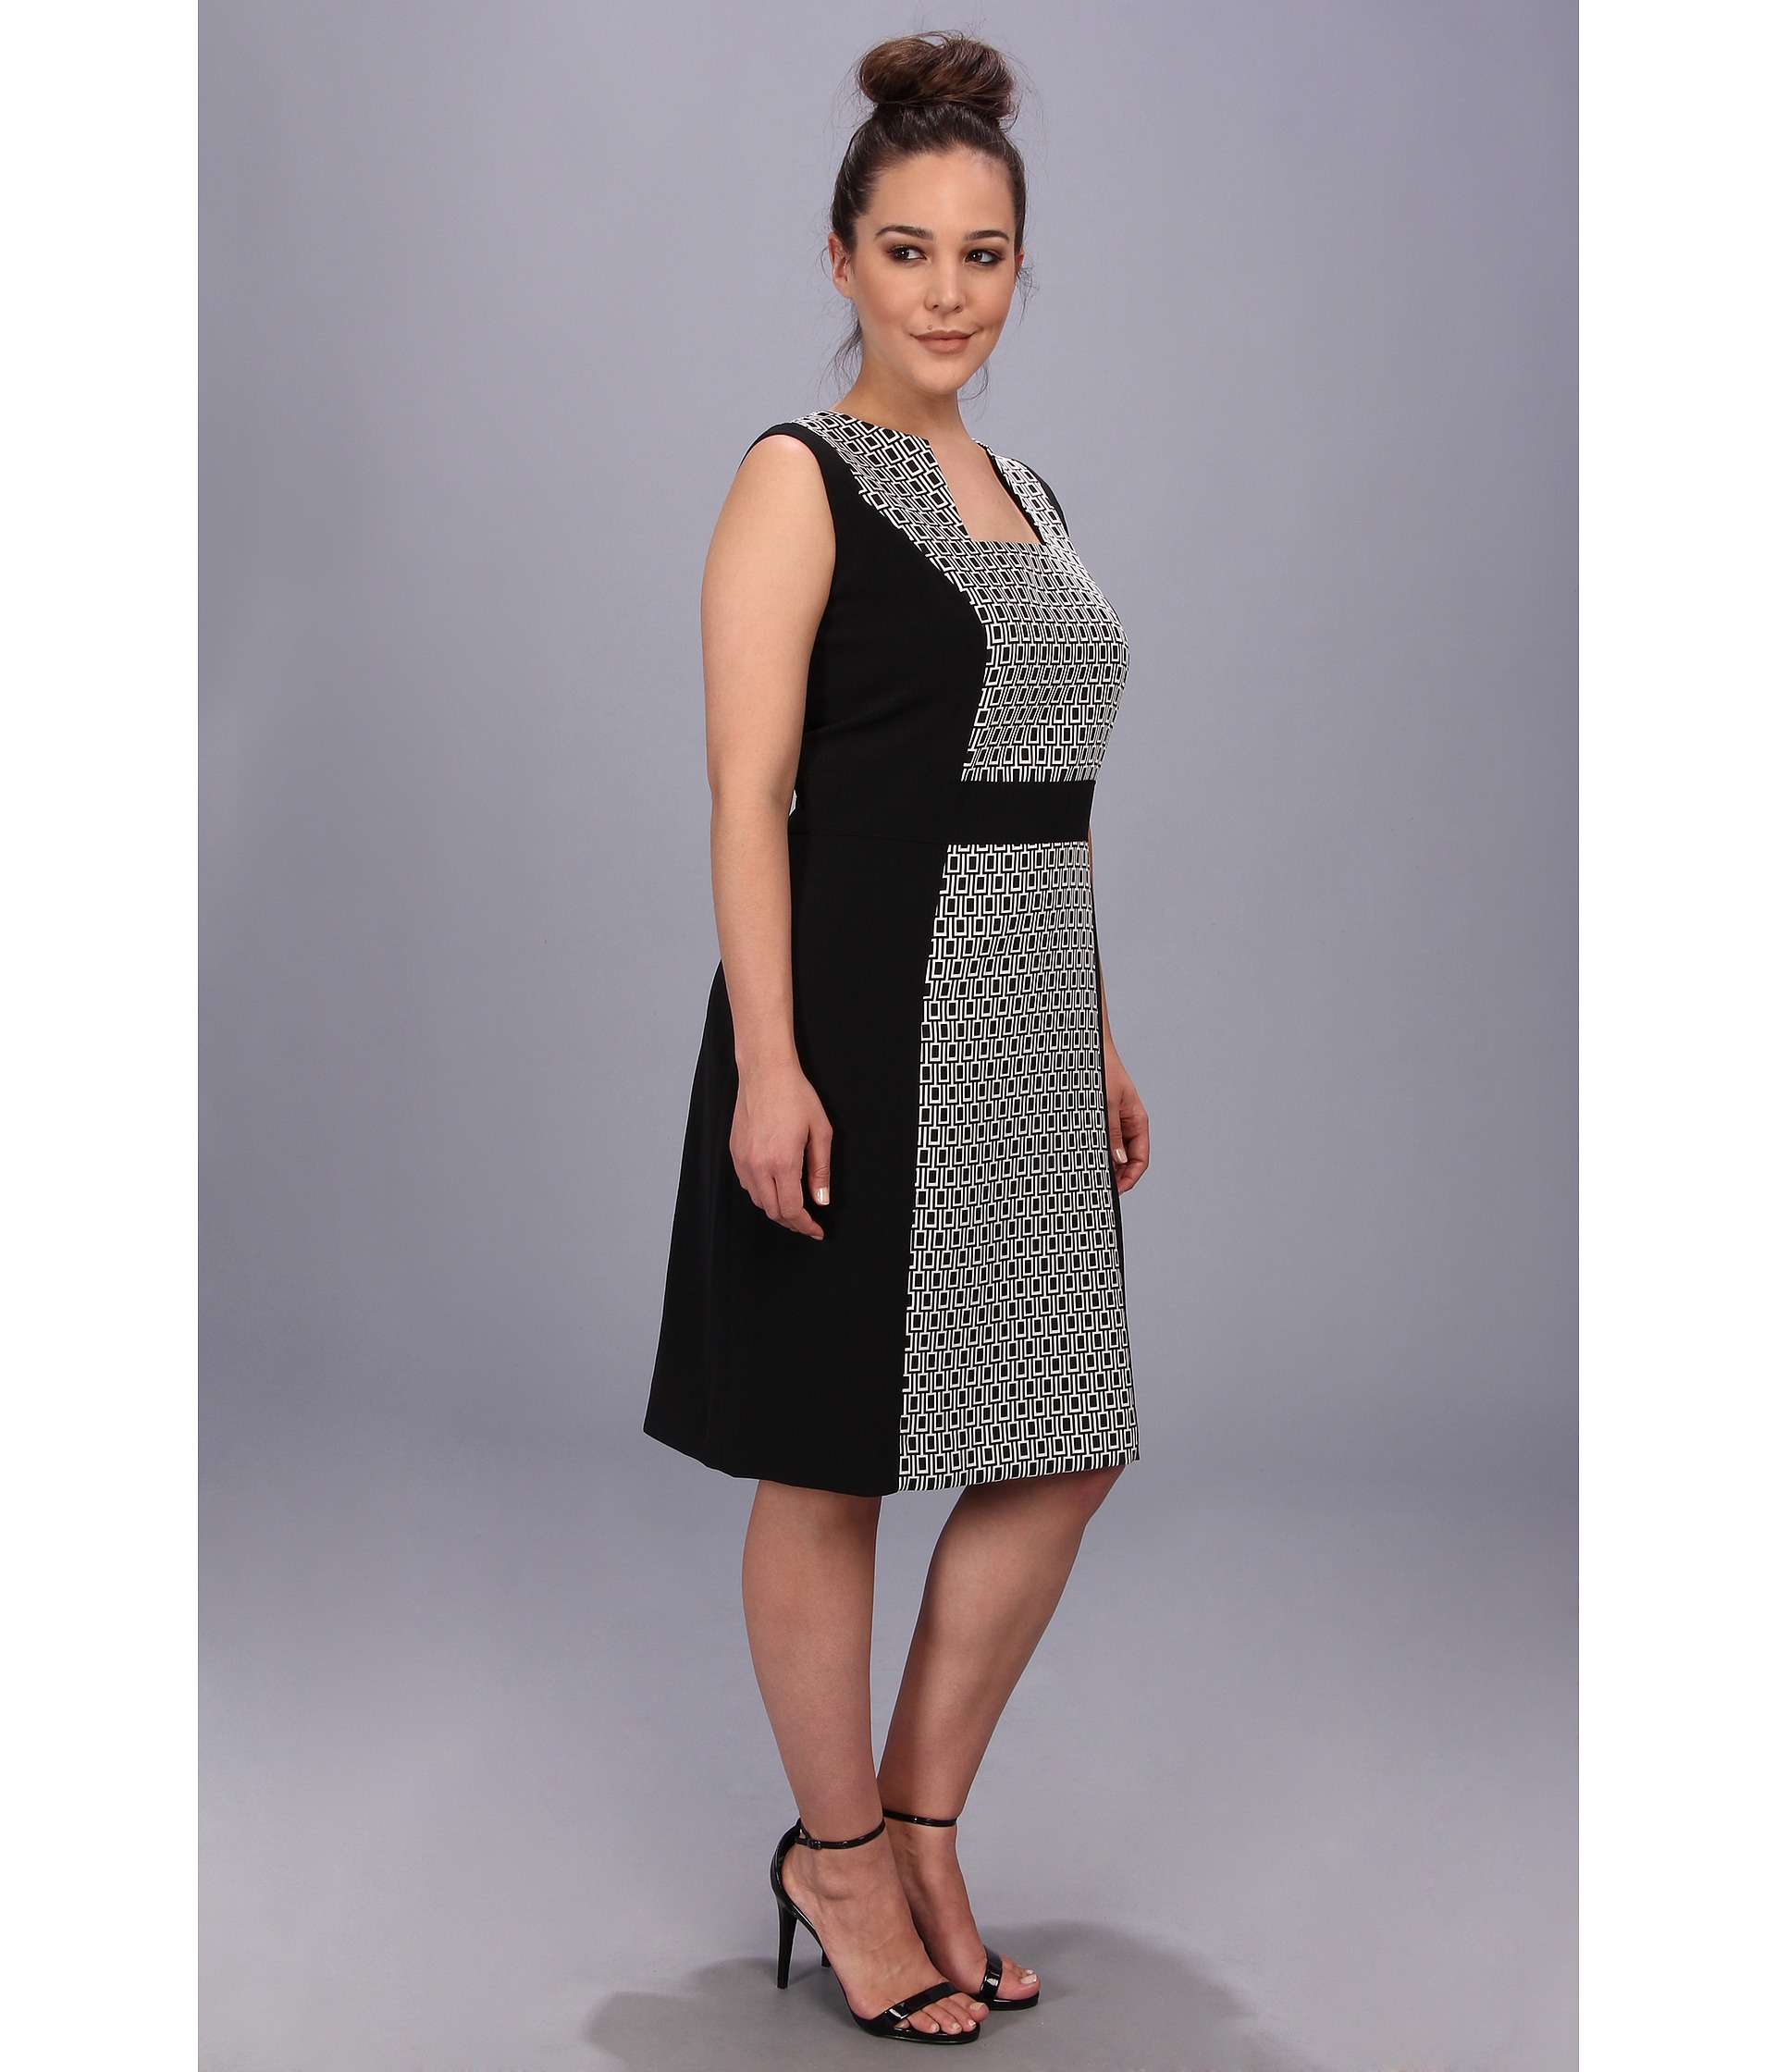 Zappos Womens Plus Size Dresses 95